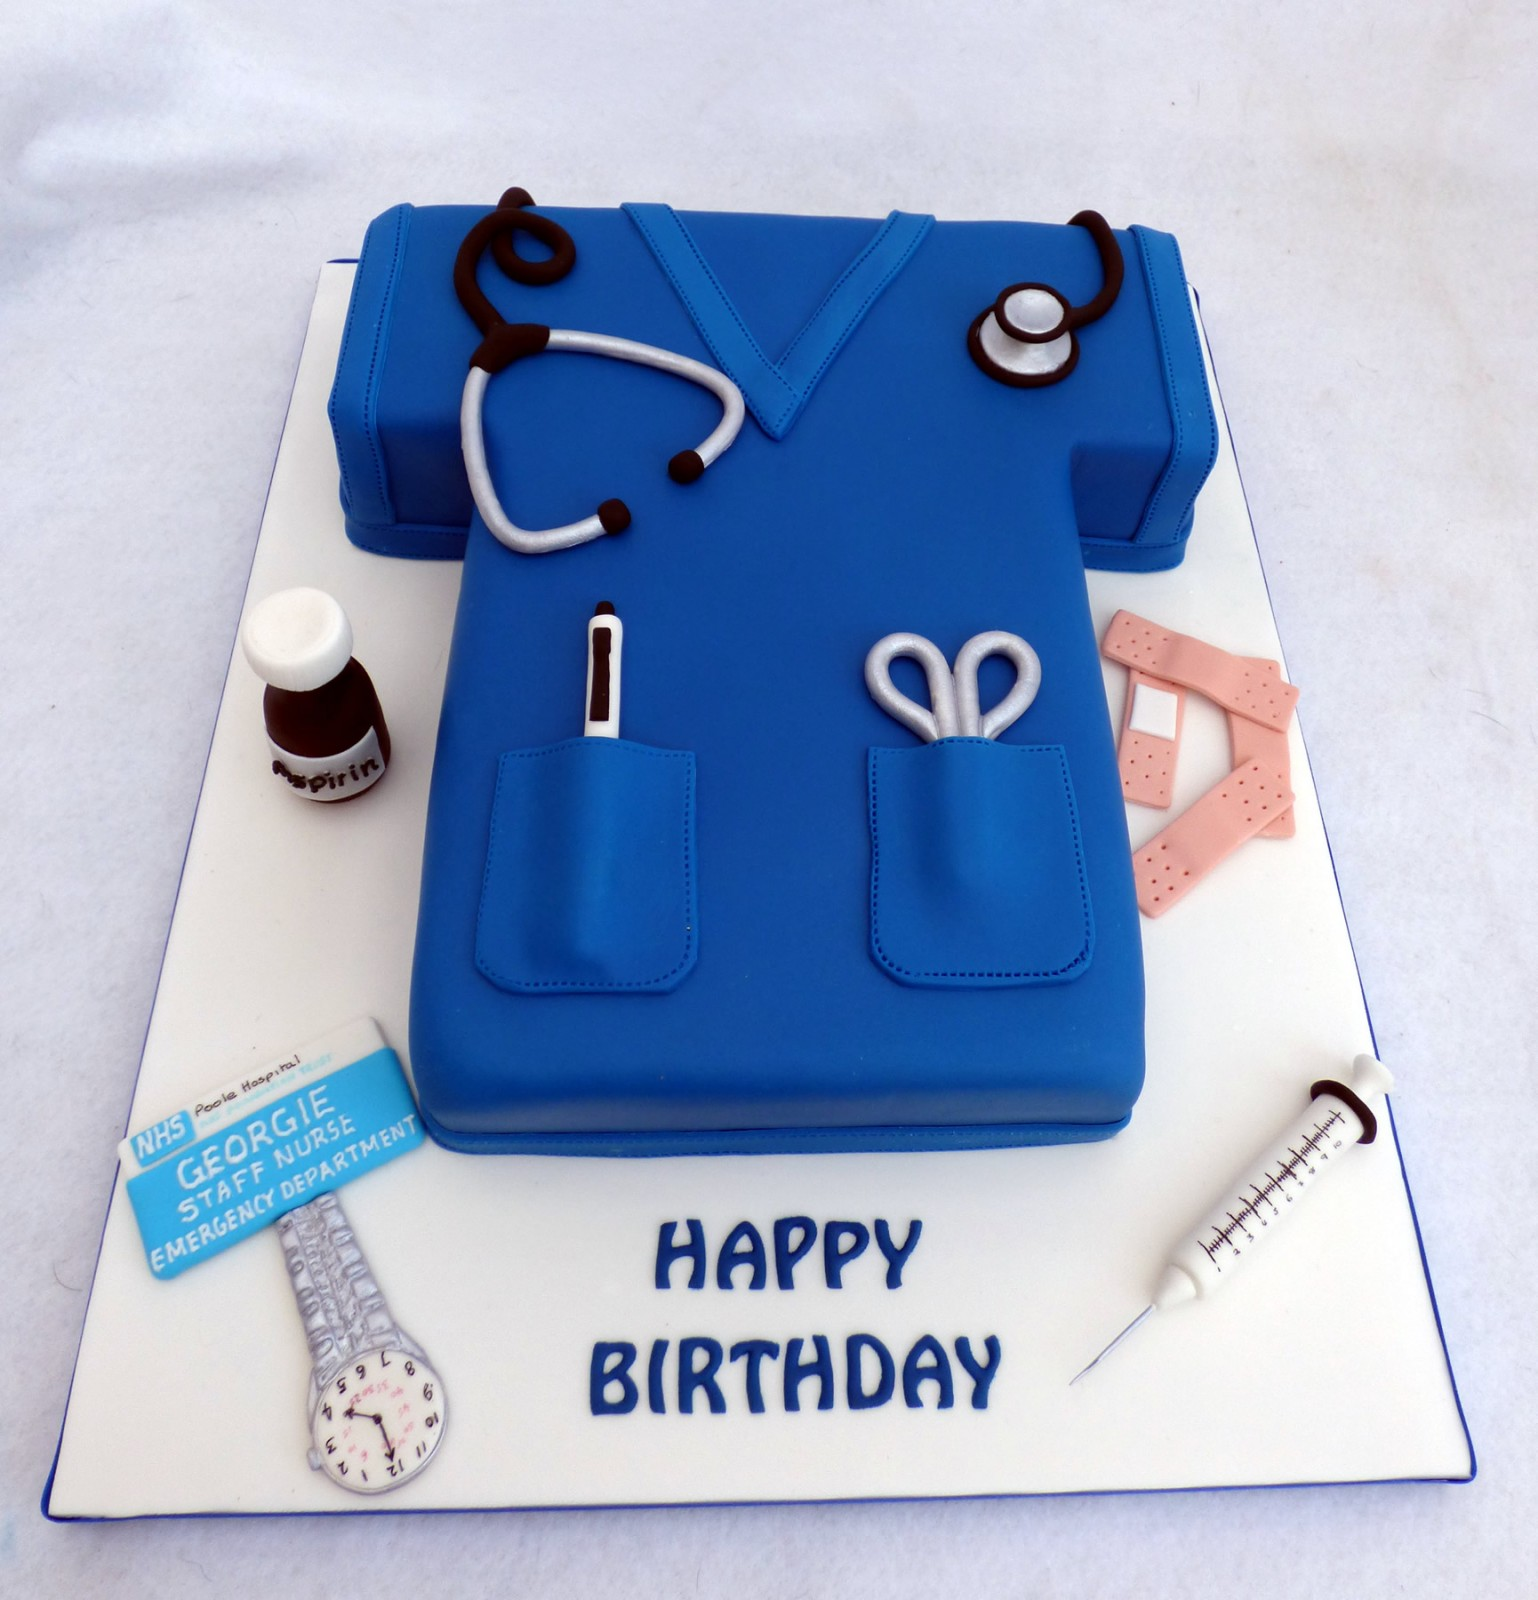 Nurses Tunic Novelty Birthday Cake Click Image To Enlarge